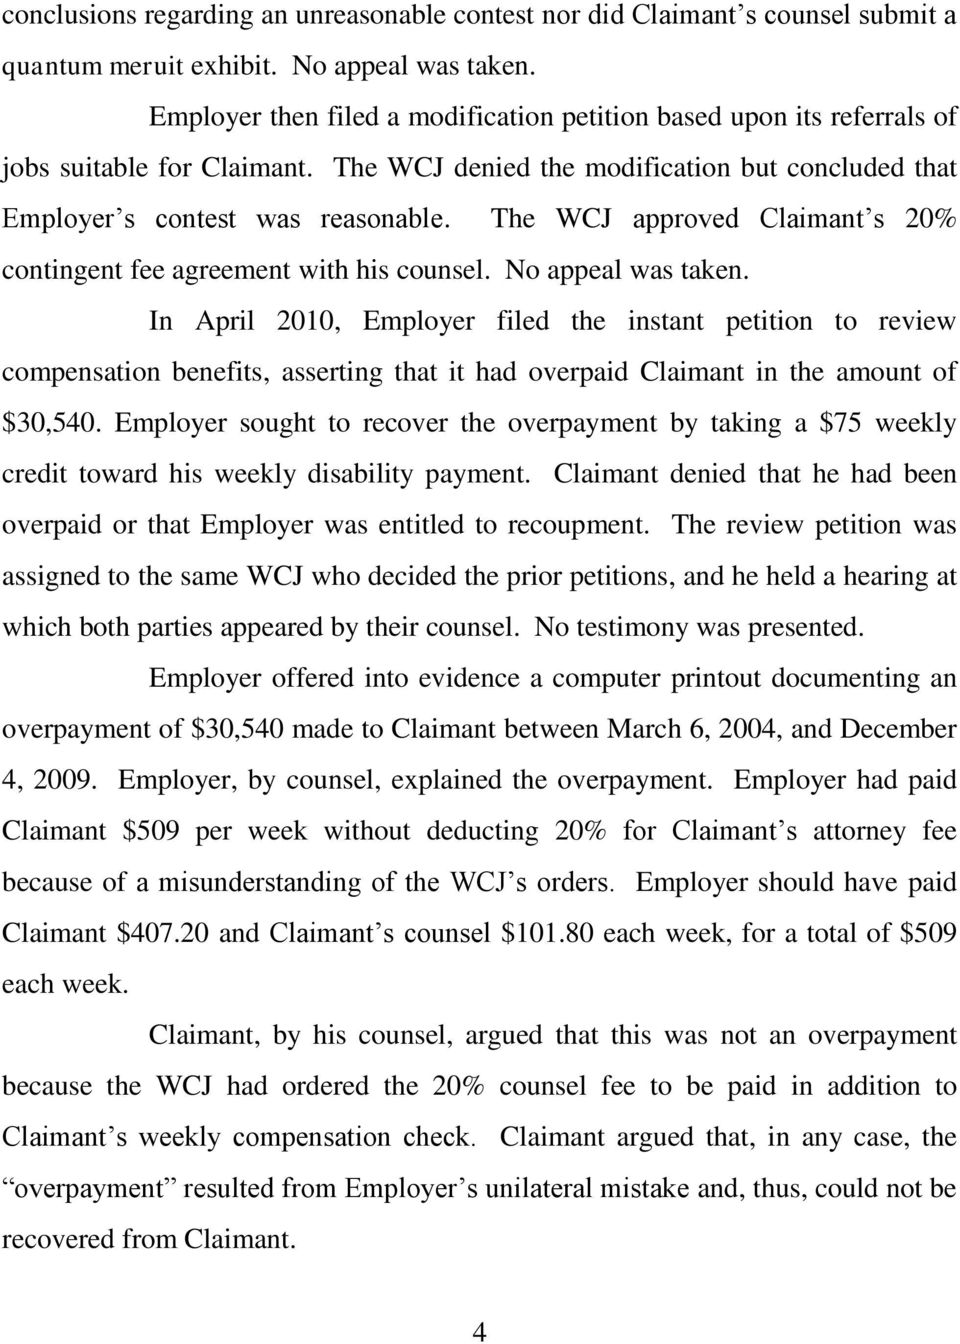 The WCJ approved Claimant s 20% contingent fee agreement with his counsel. No appeal was taken.